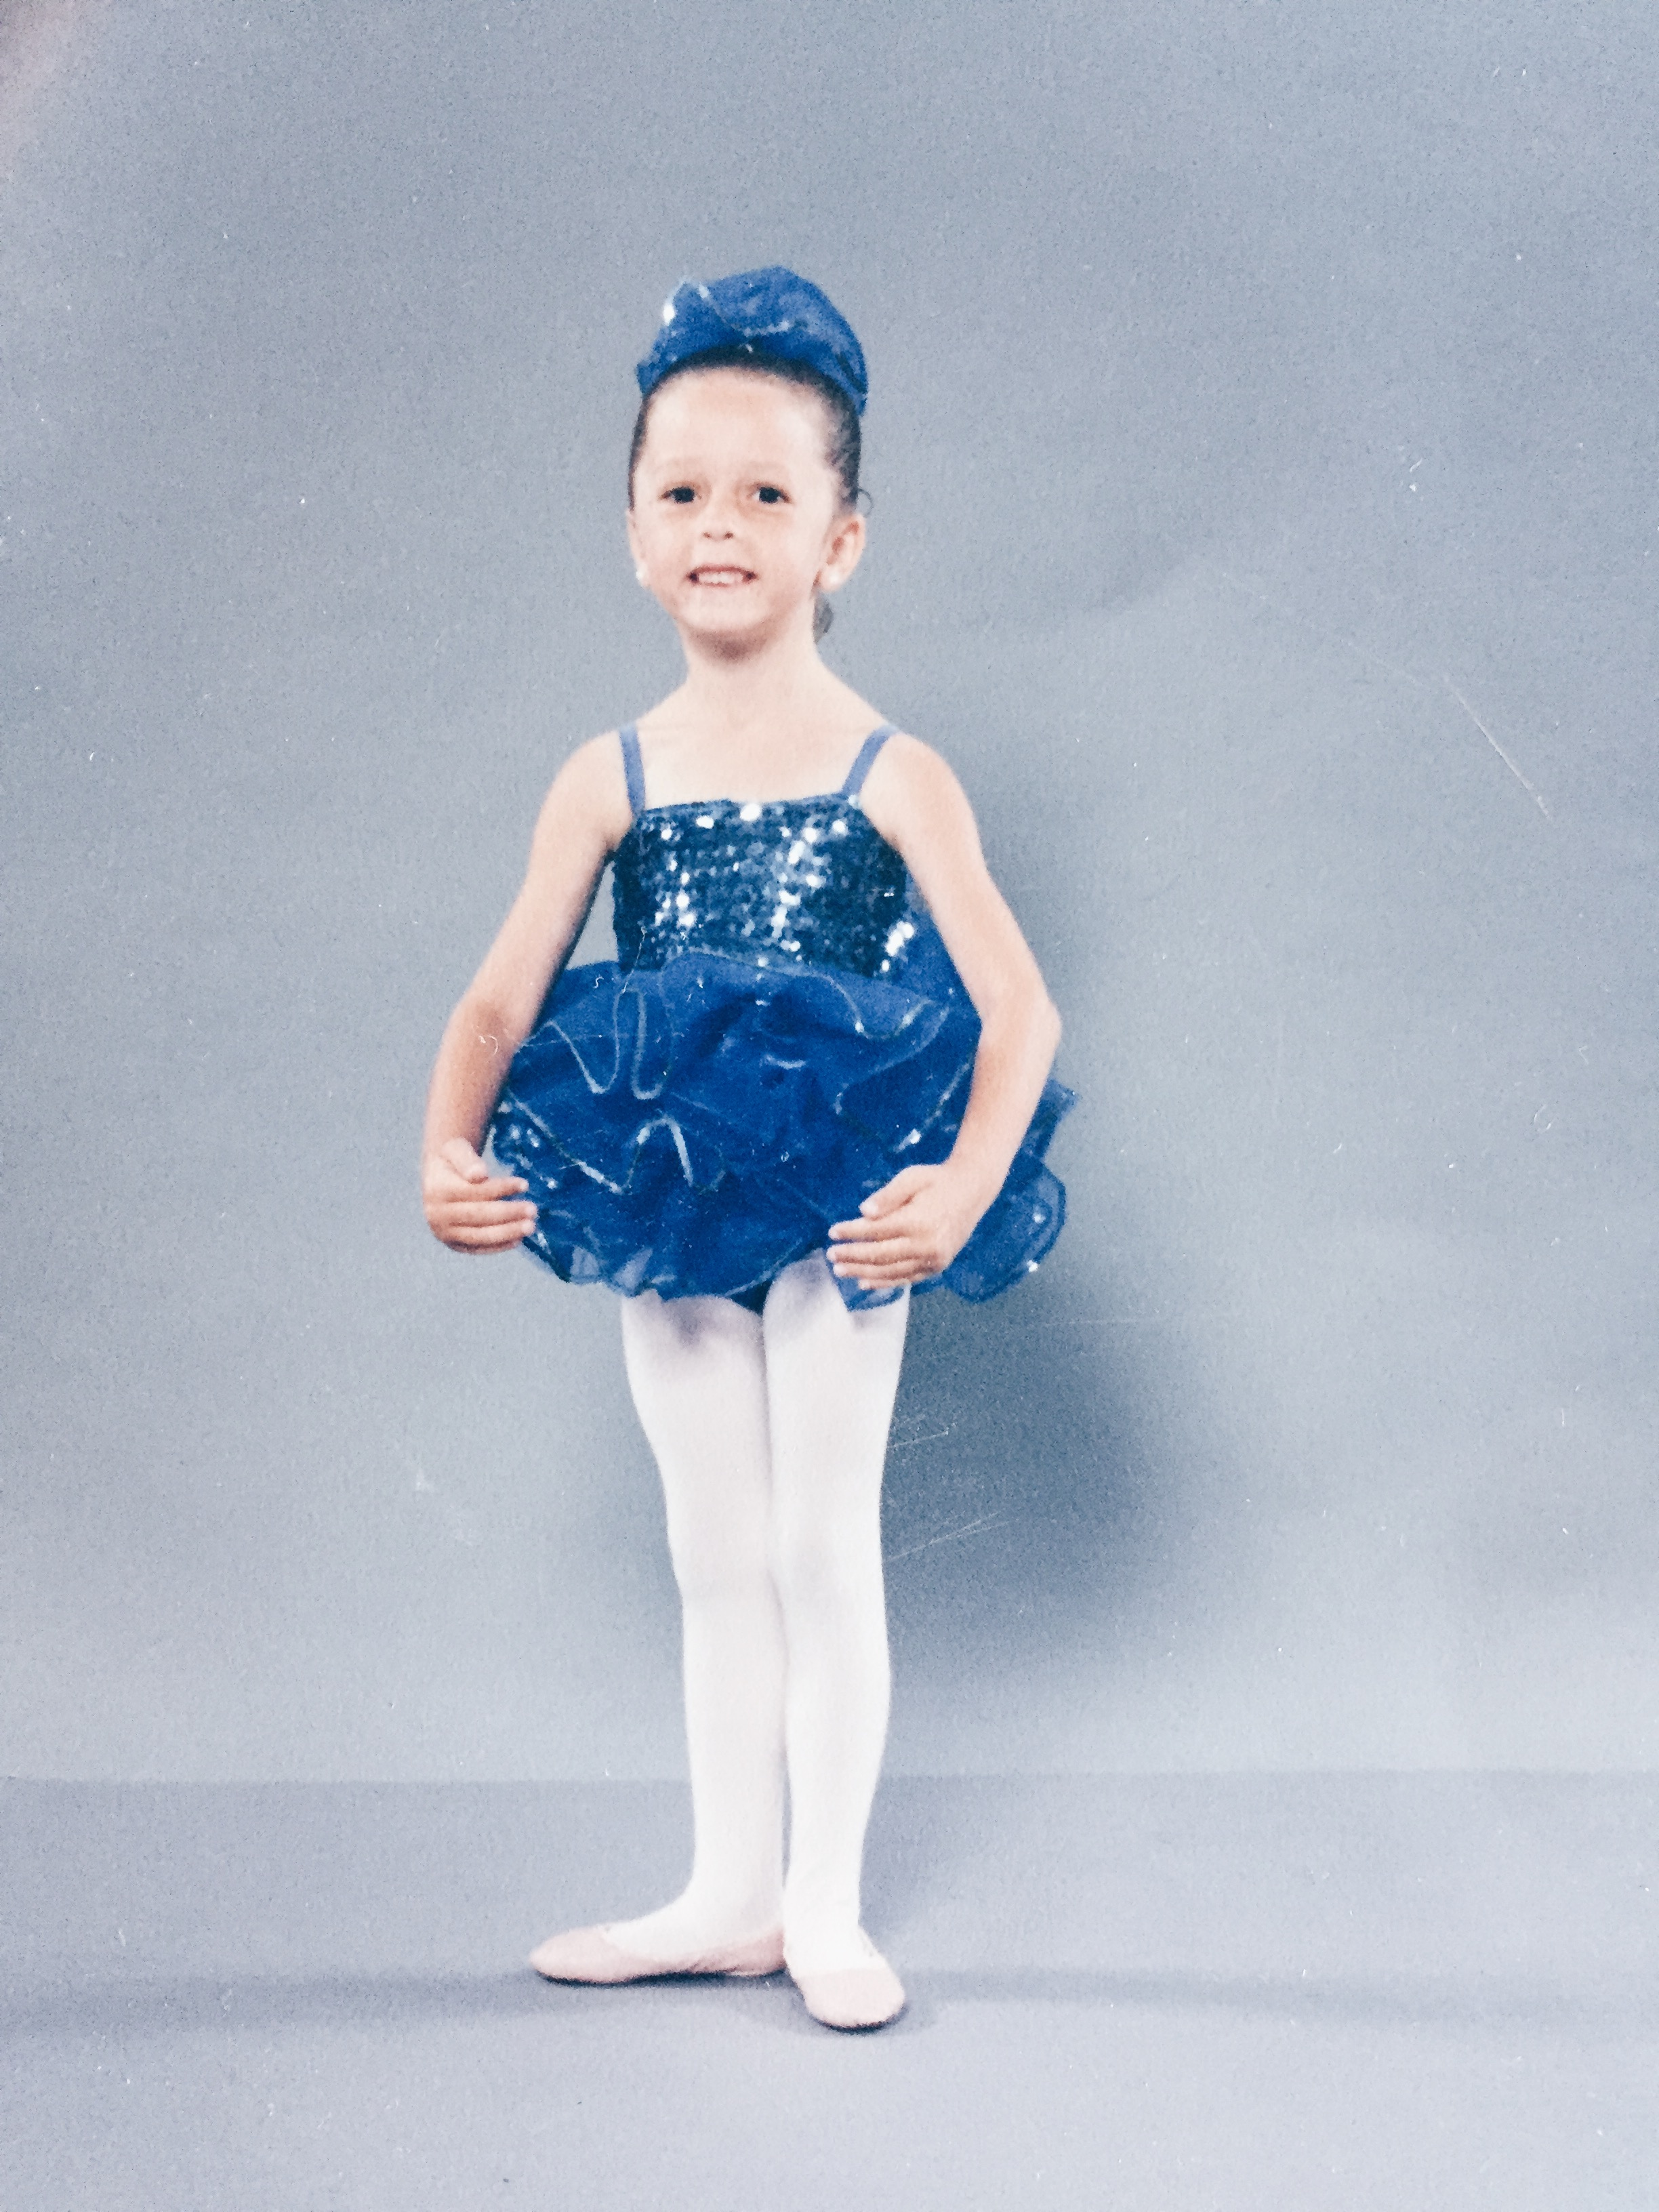 - Inspired by Angelina Ballerina, little 3 year old me wanted to learn ballet & work hard!